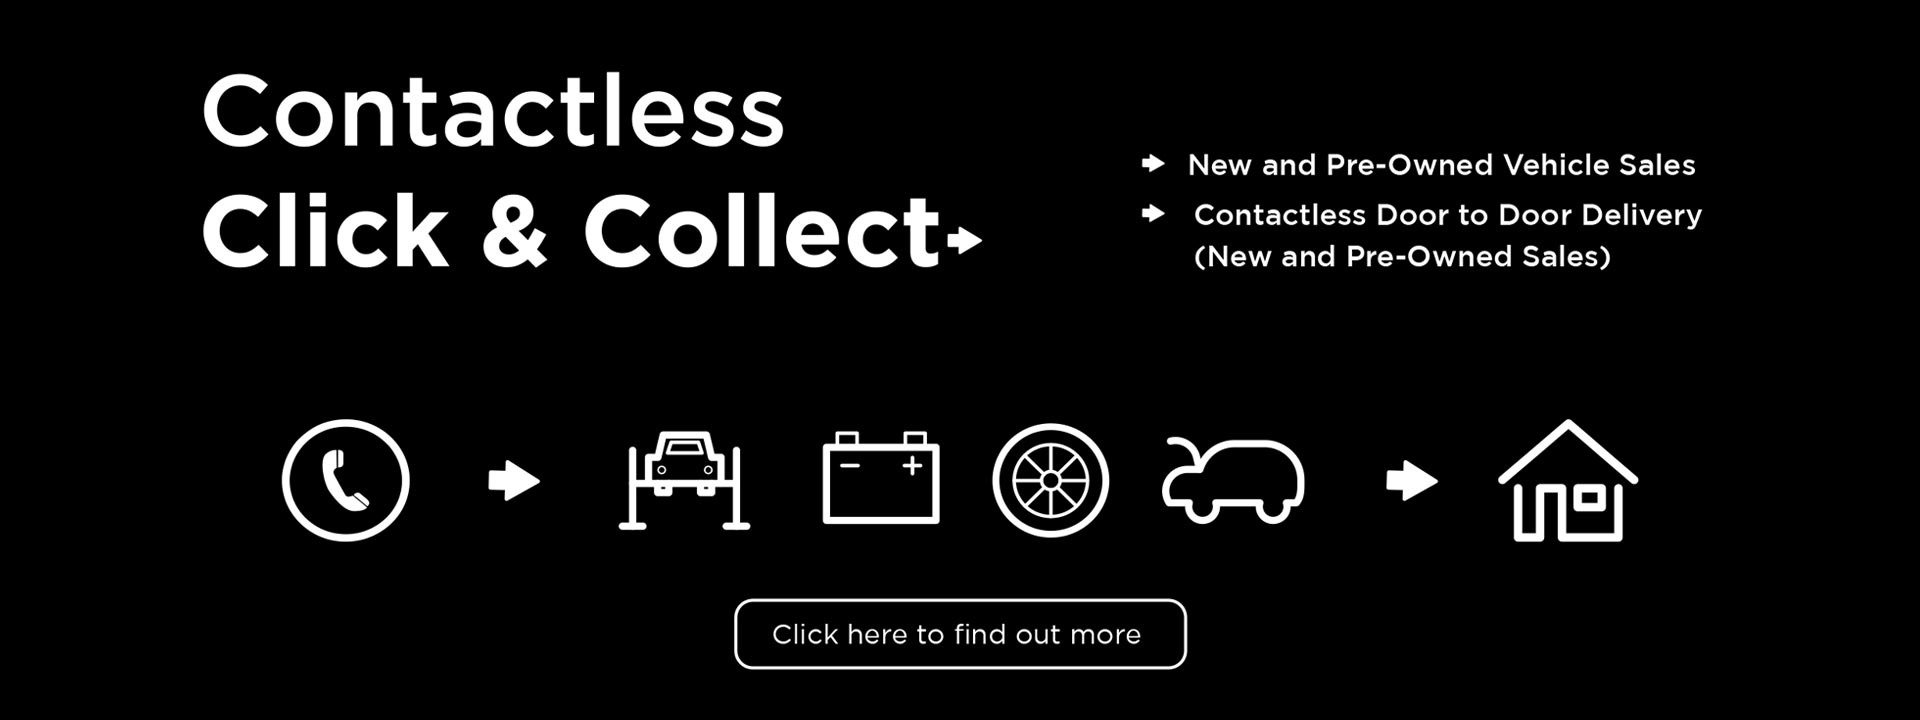 Brighton Ram Click & Collect